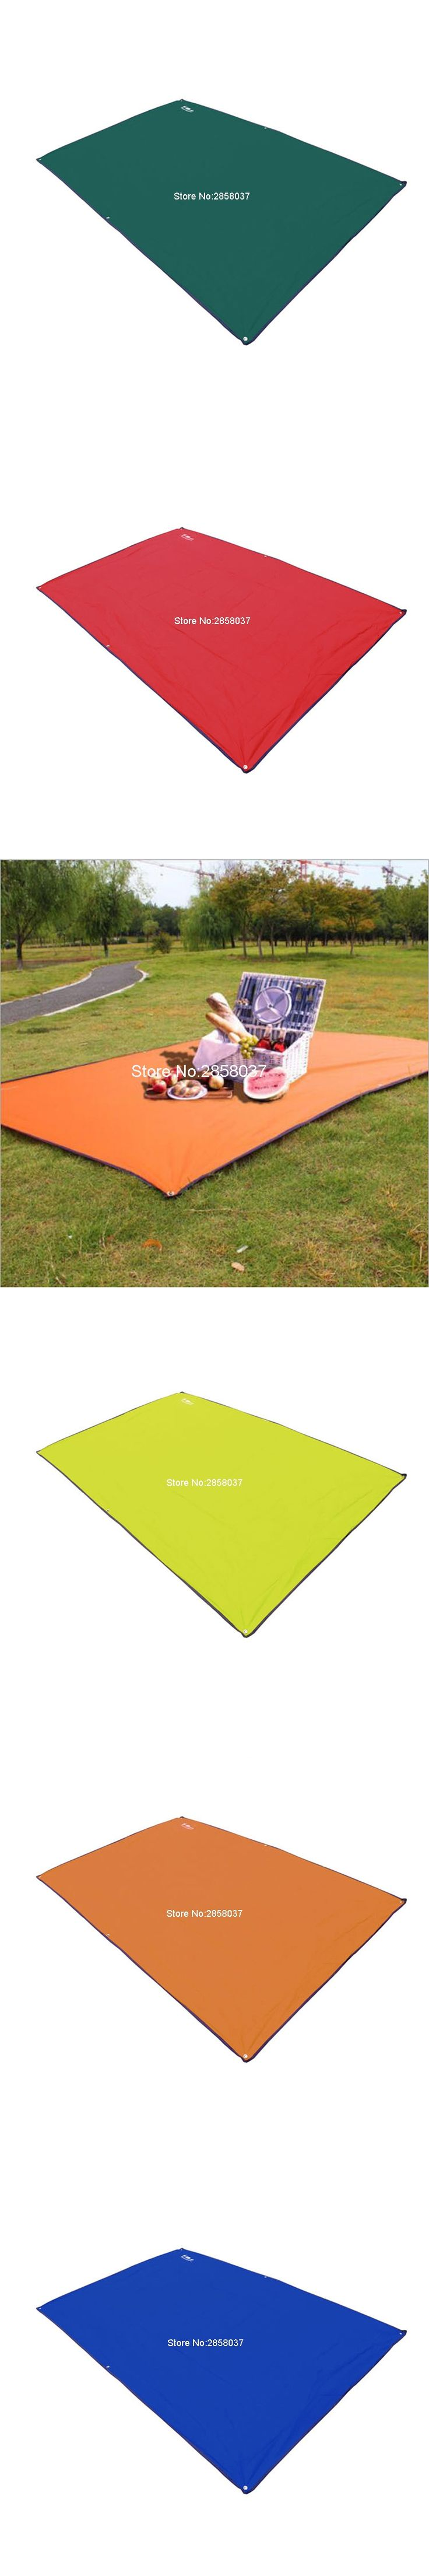 FLYTOP 150*220cm 3-4 Person Outdoor Picnic Camping Mat Beach Tent Awning 9 Colors